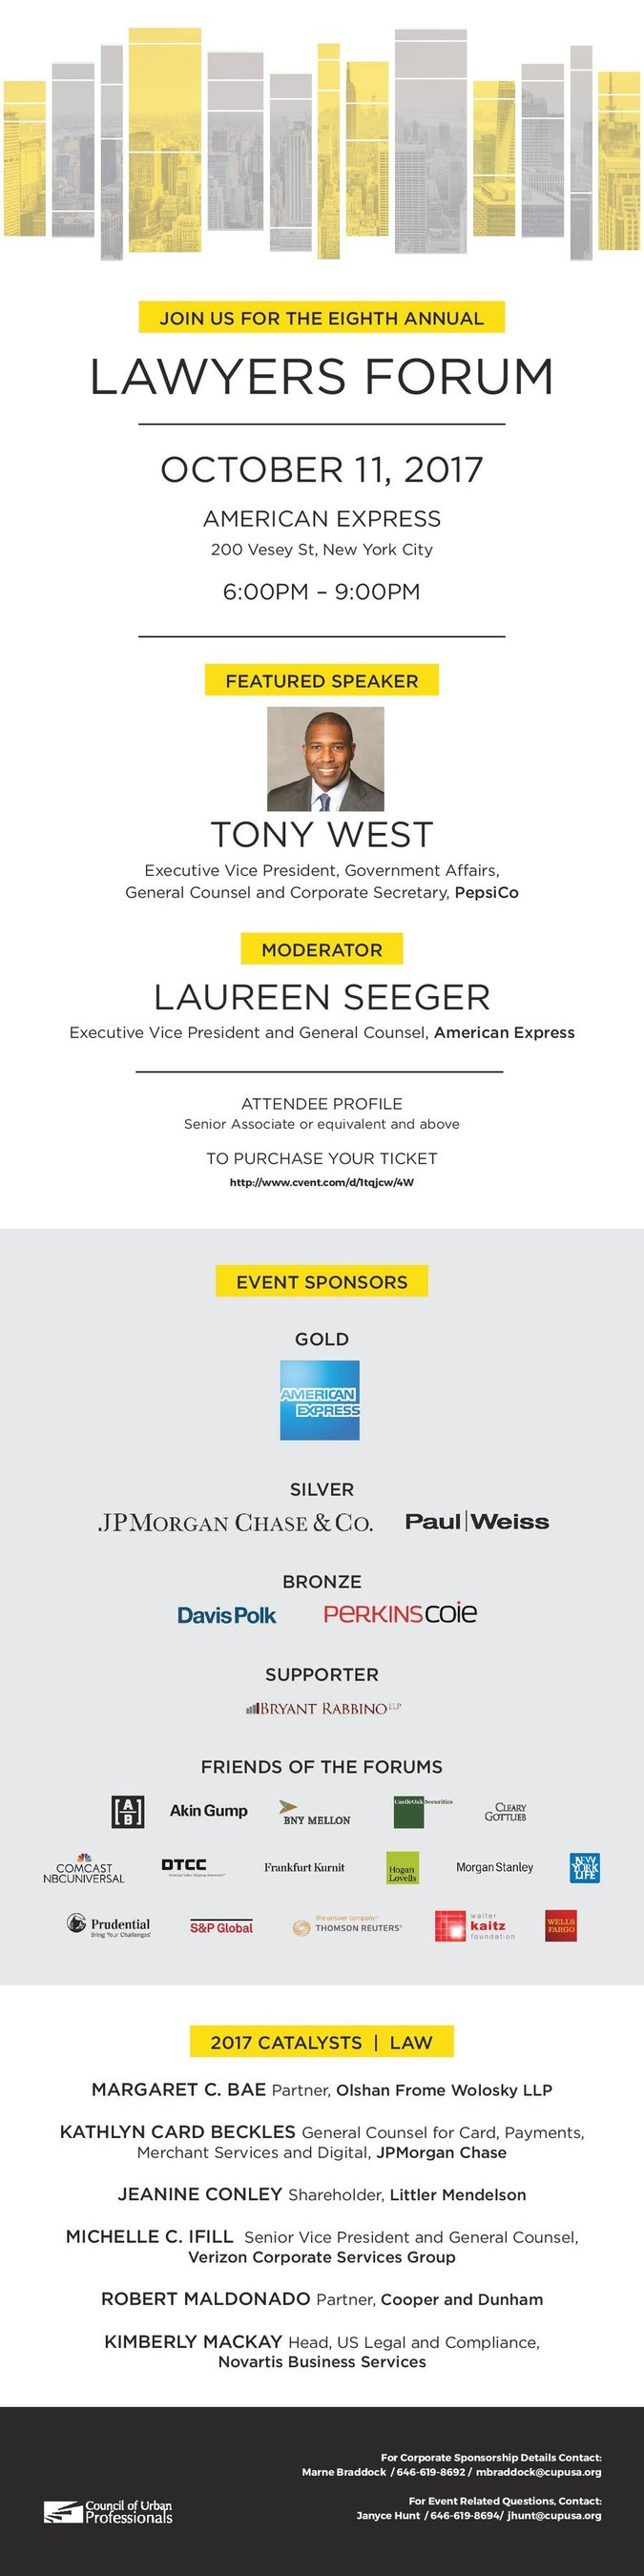 rsz_1rsz_18th_annual_lawyers_forum_invite-page-001